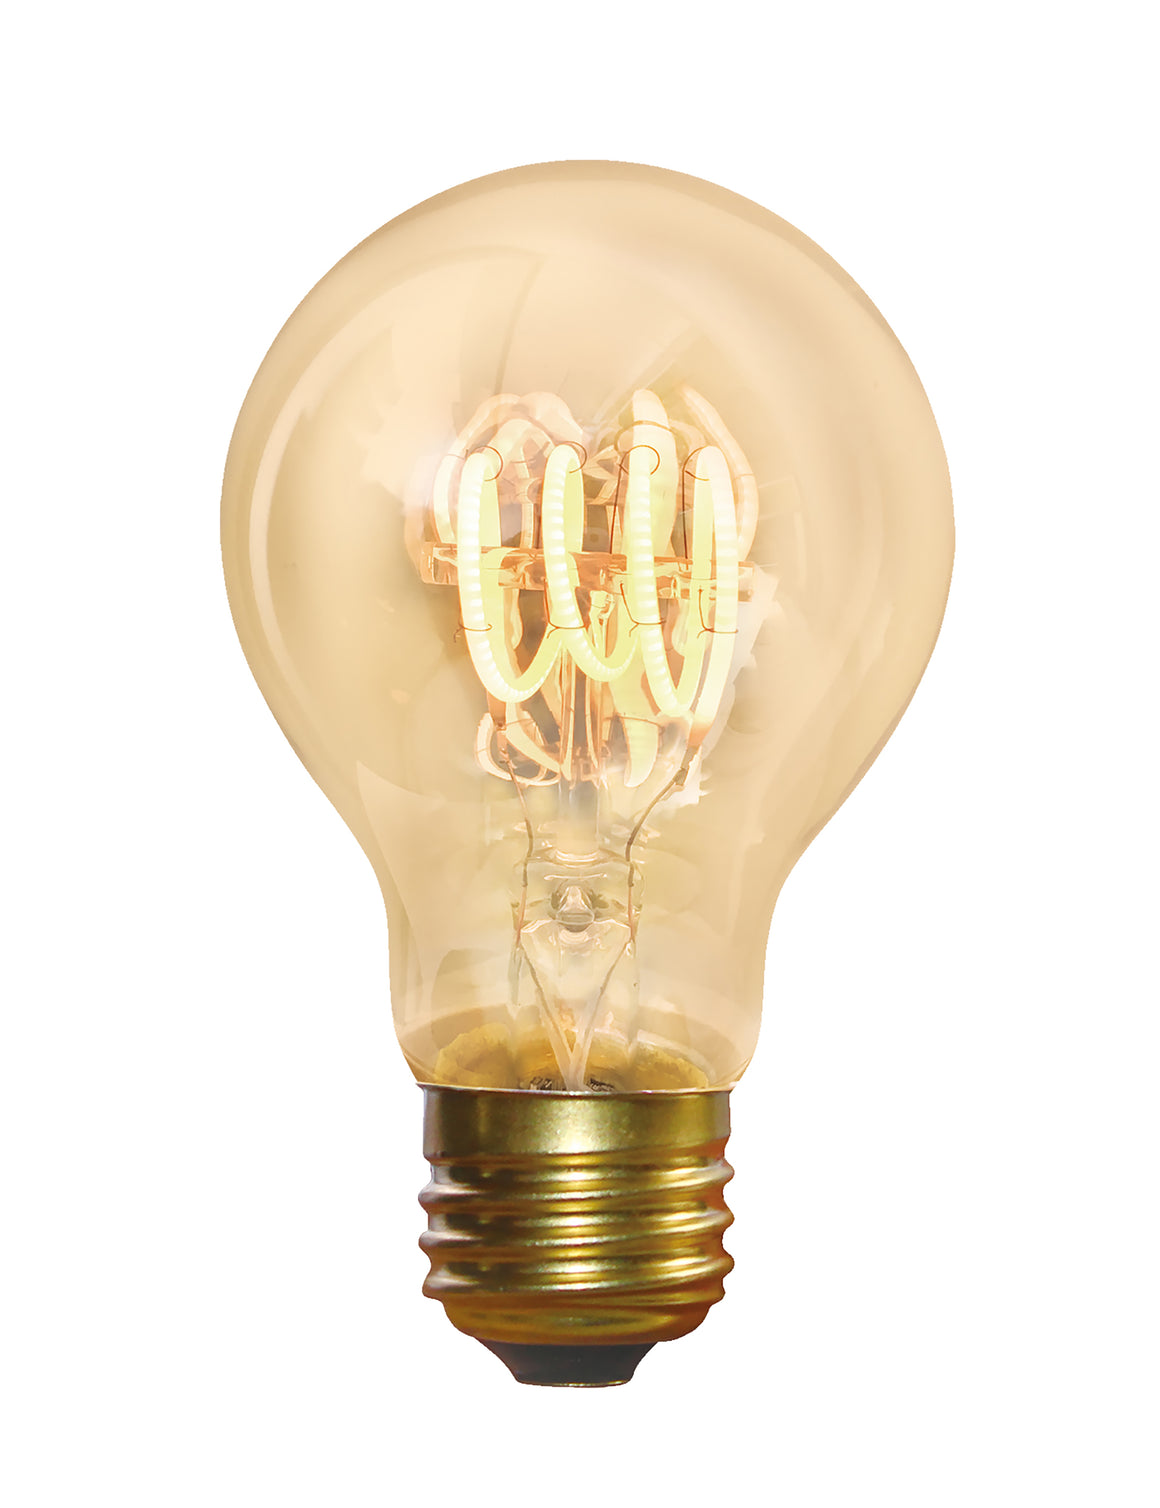 Vintage Spiral LED Edison Bulb Old Filament Lamp - 5W E27 Classic A60 - Amber